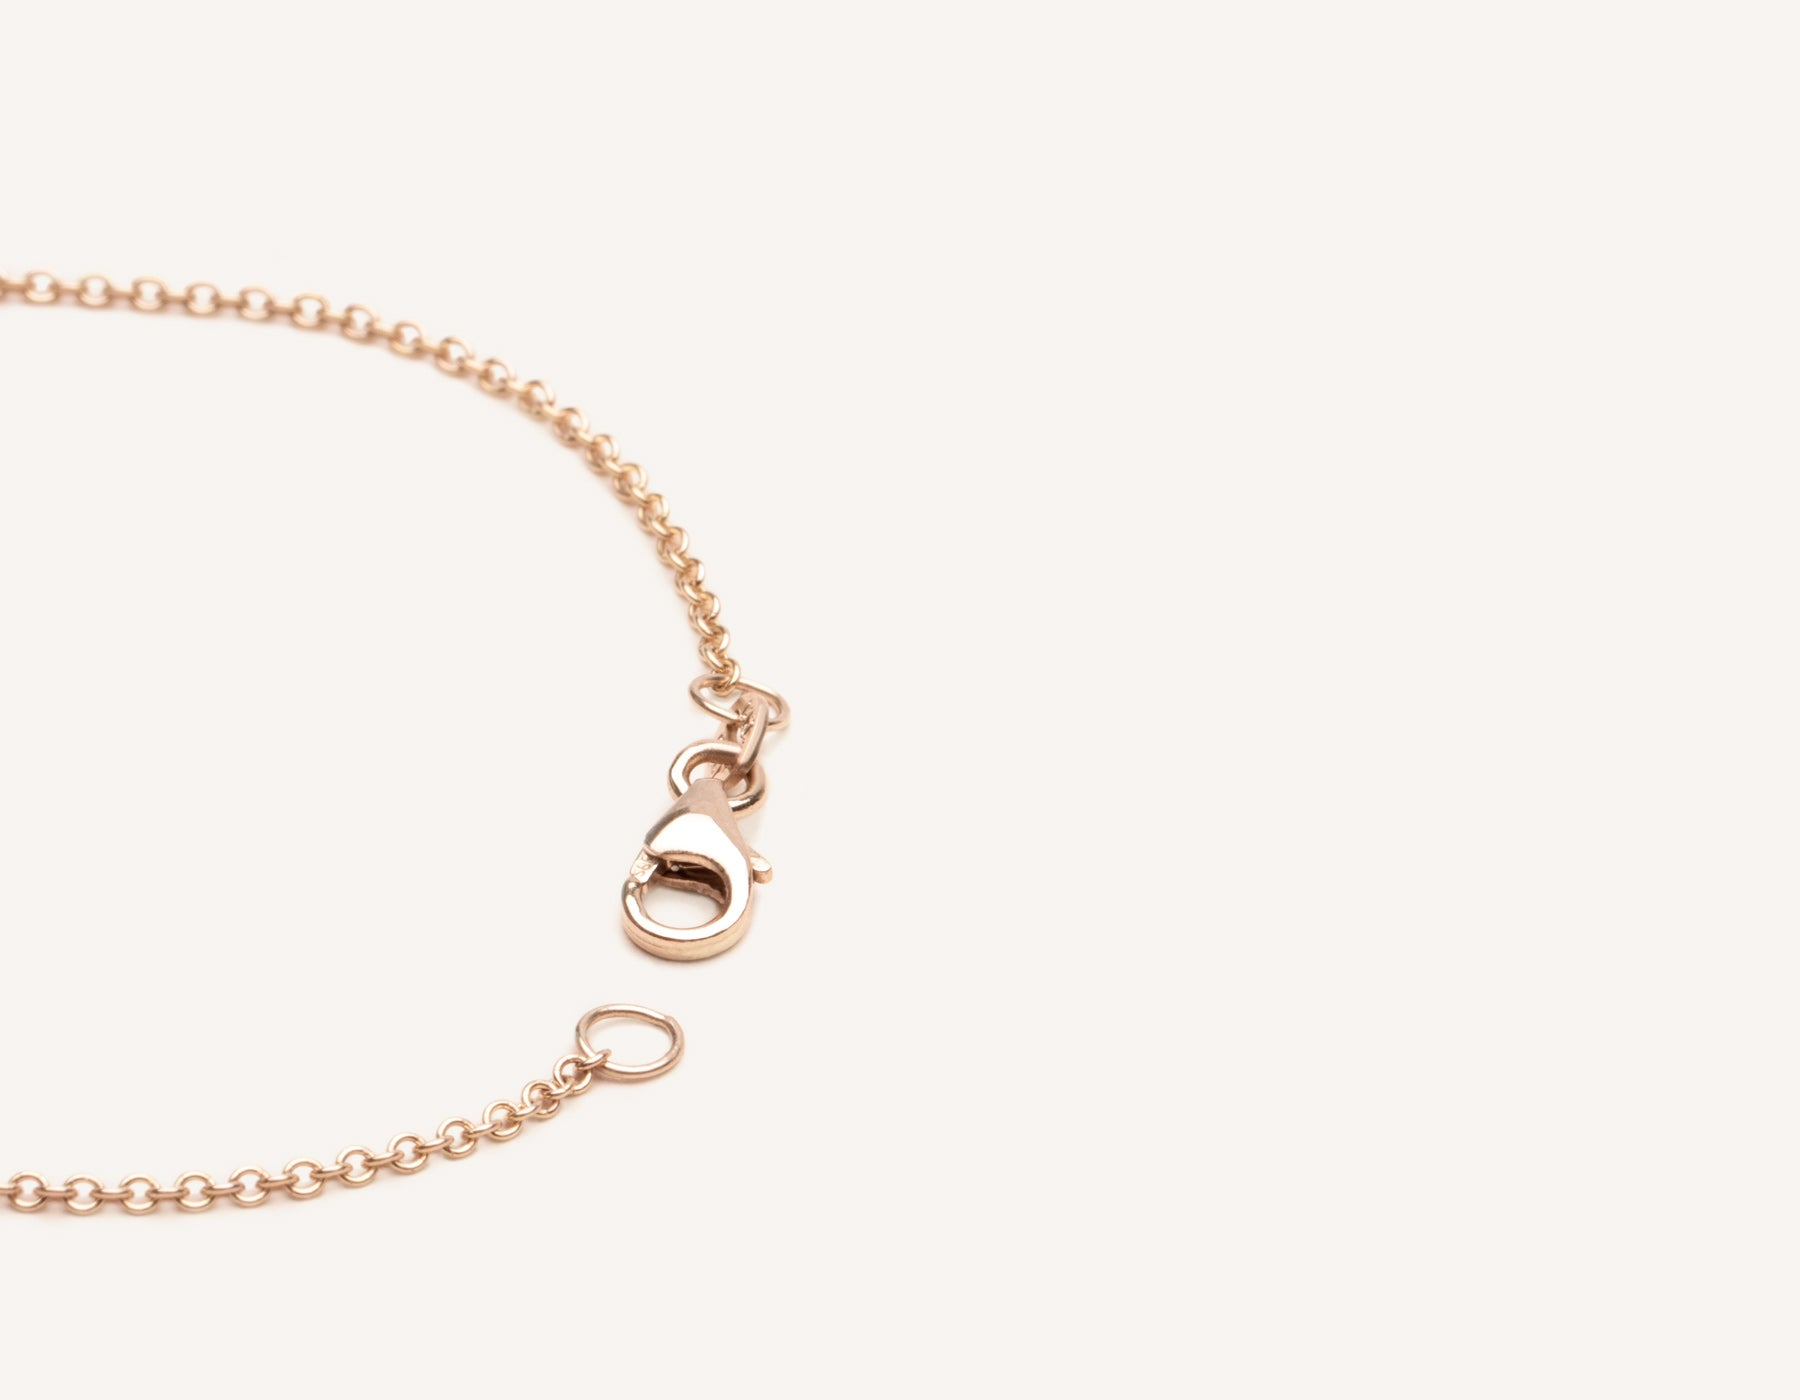 Vrai & Oro 14k solid gold bracelet lobster clasp on thin oval link chain, 14K Rose Gold